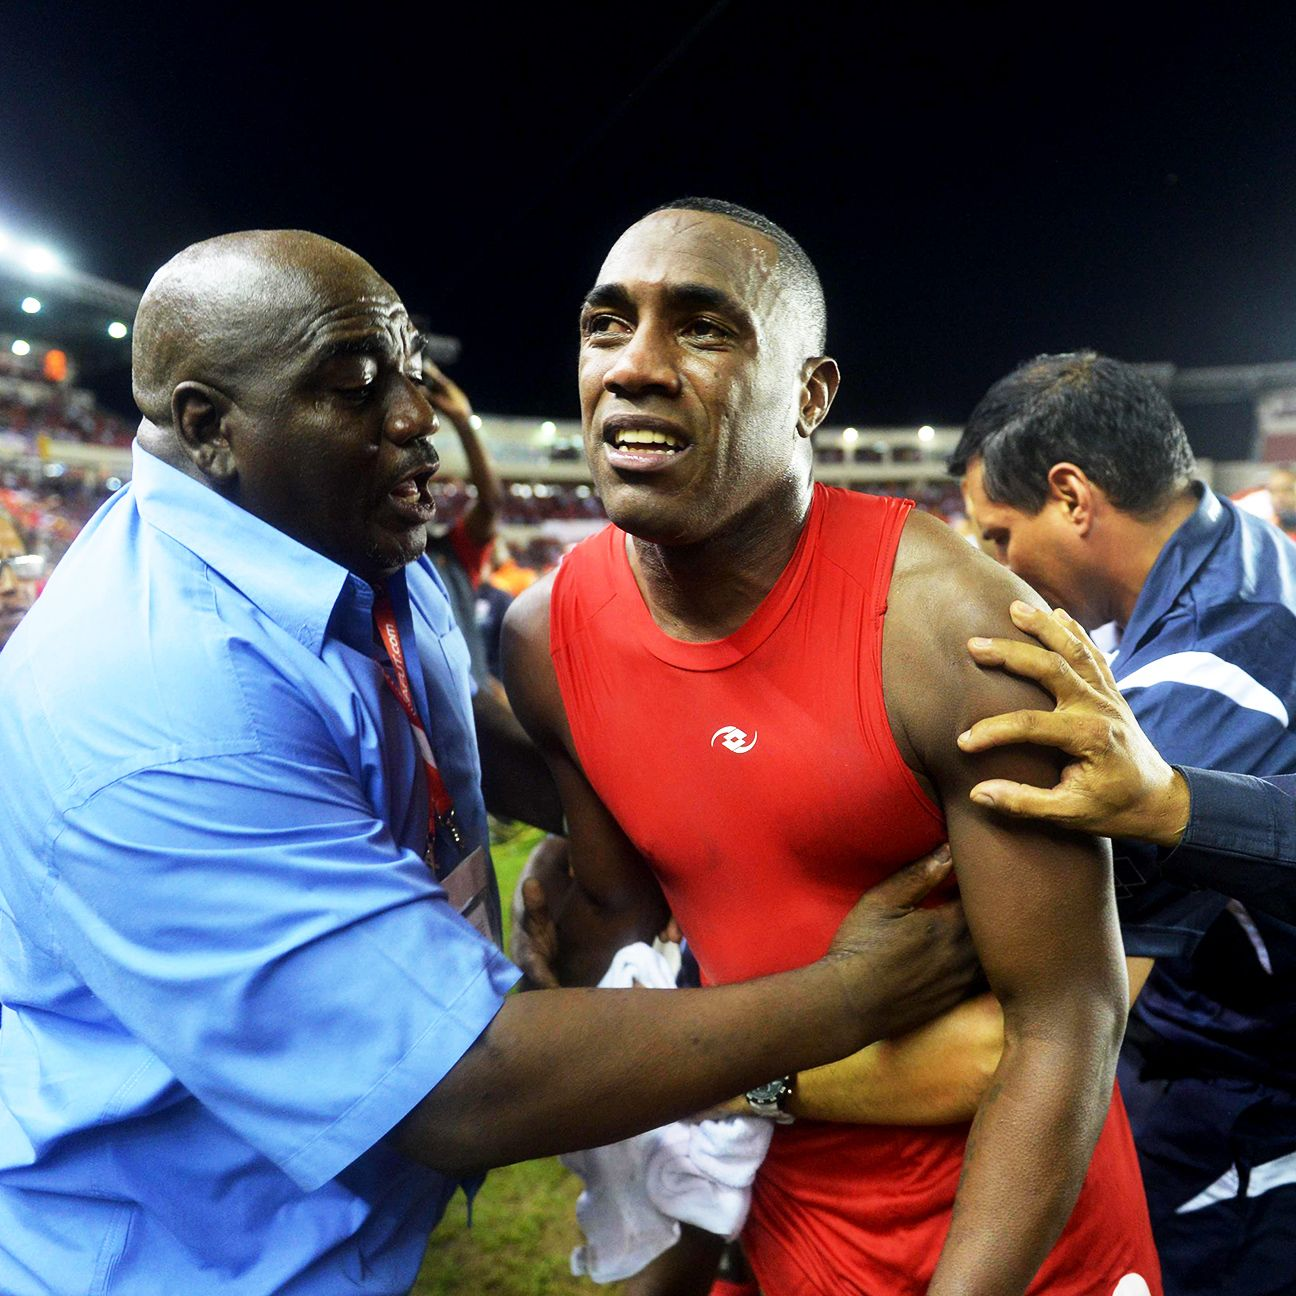 On track to be the hero for Panama, Luis Tejada's night ended in sorrow.